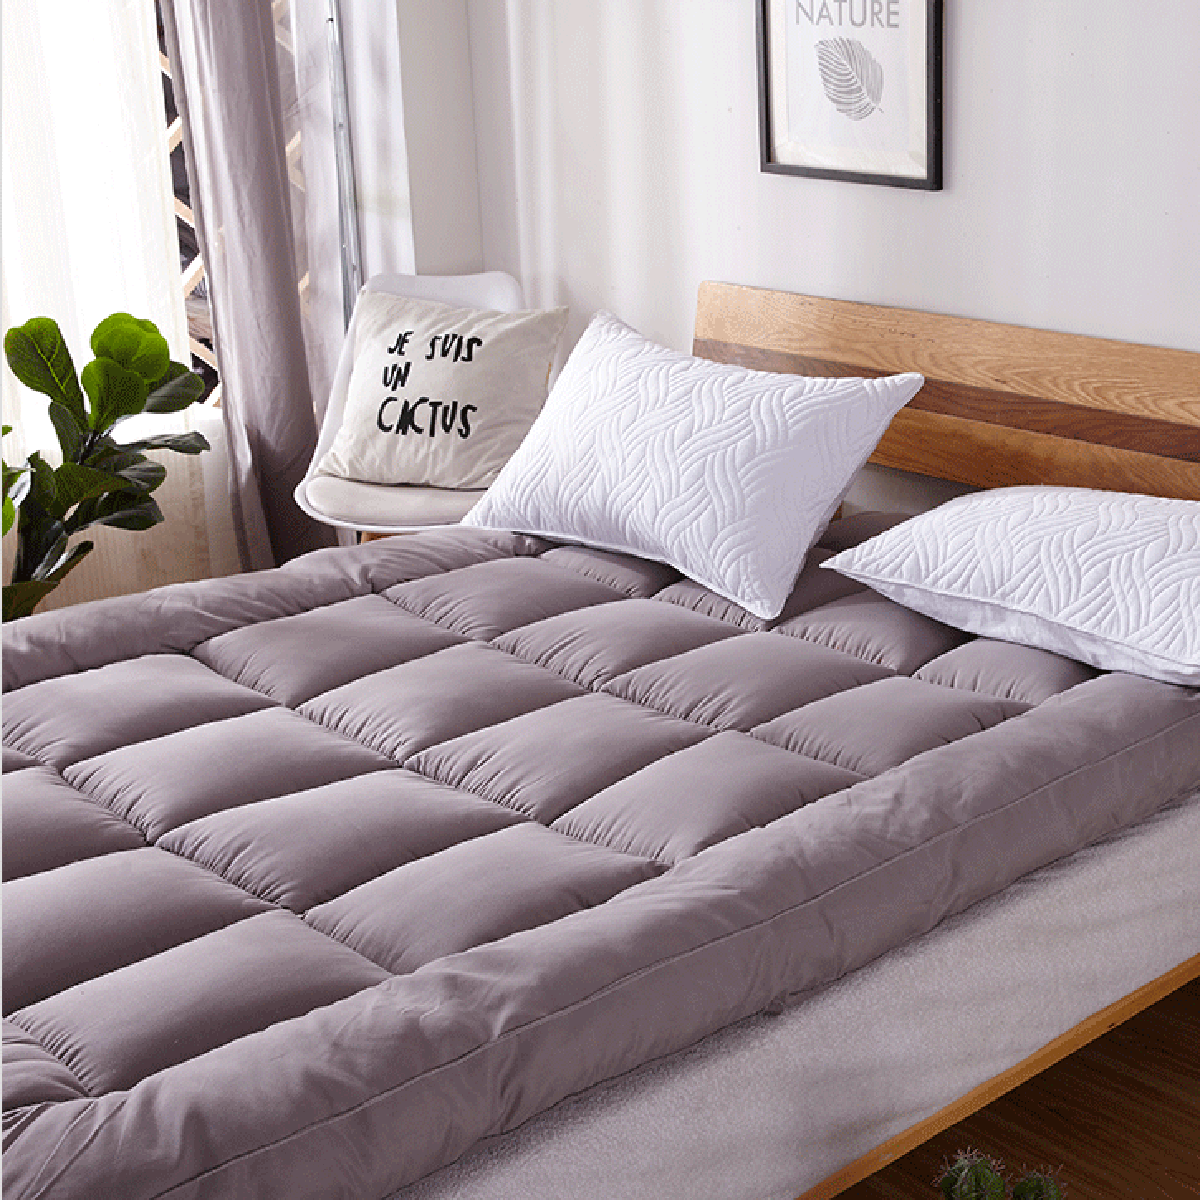 1.5M/1.8M Quilted Embossed Waterproof Mattress Protector Pad Ultra Soft Additional Pad for Bed